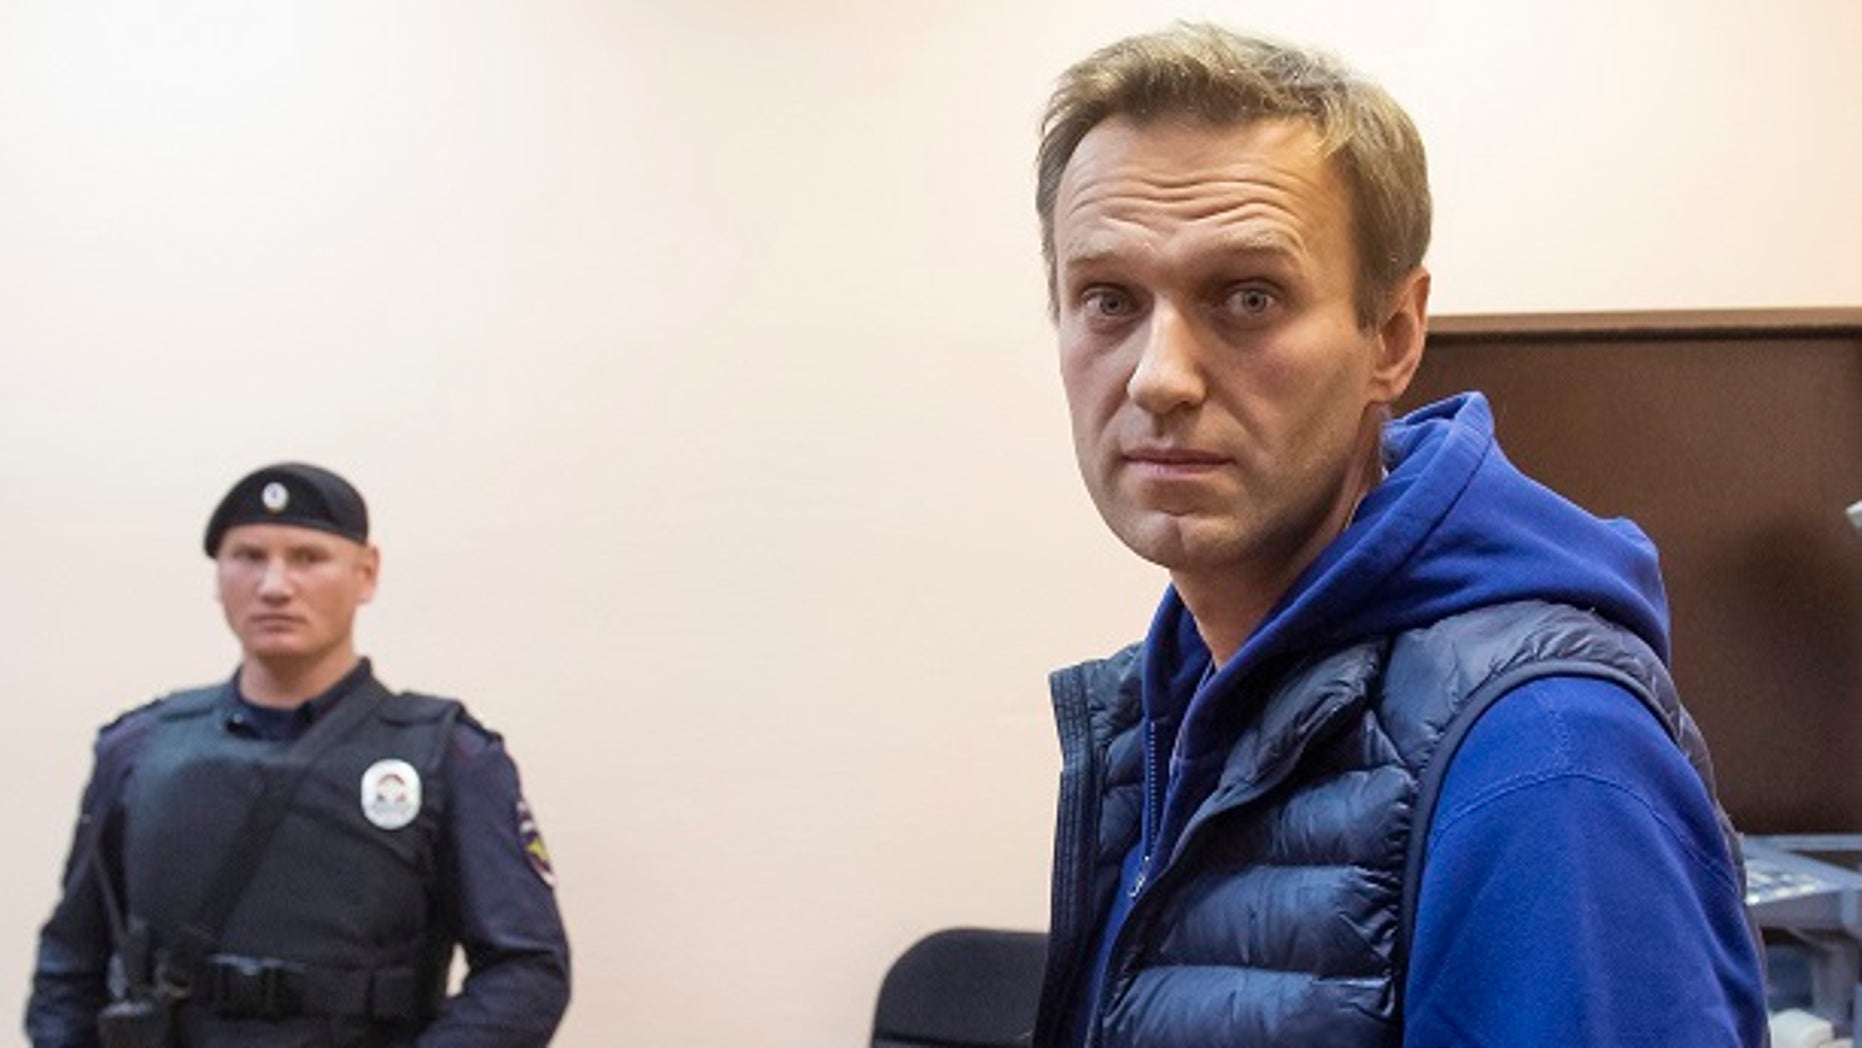 They want to sentence Alexei Navalny to 10 years of imprisonment 12/19/2014 18